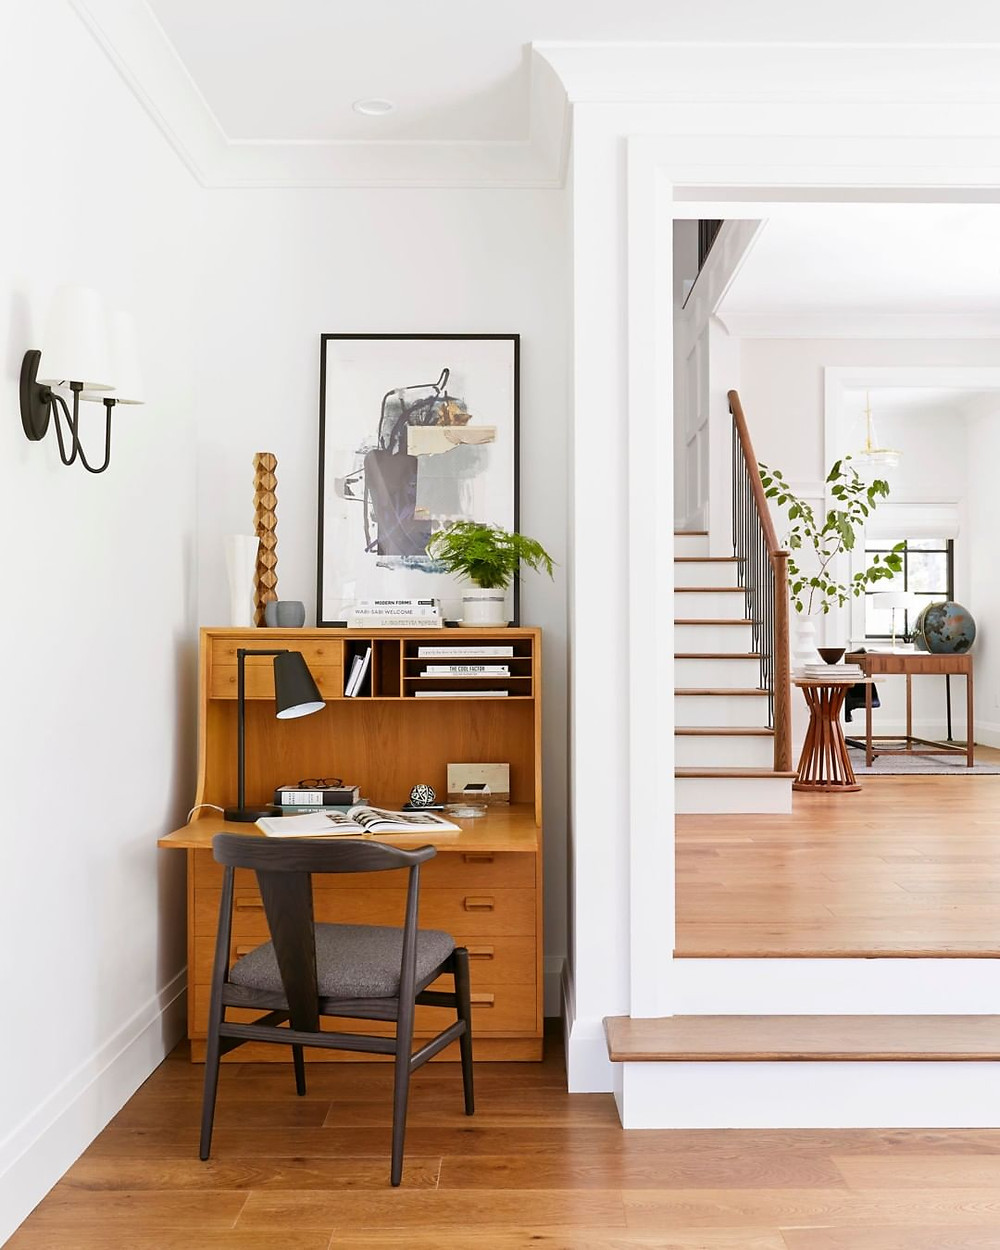 Home Design Ideas Budget:  Decorating On A Budget : Home Office Ideas